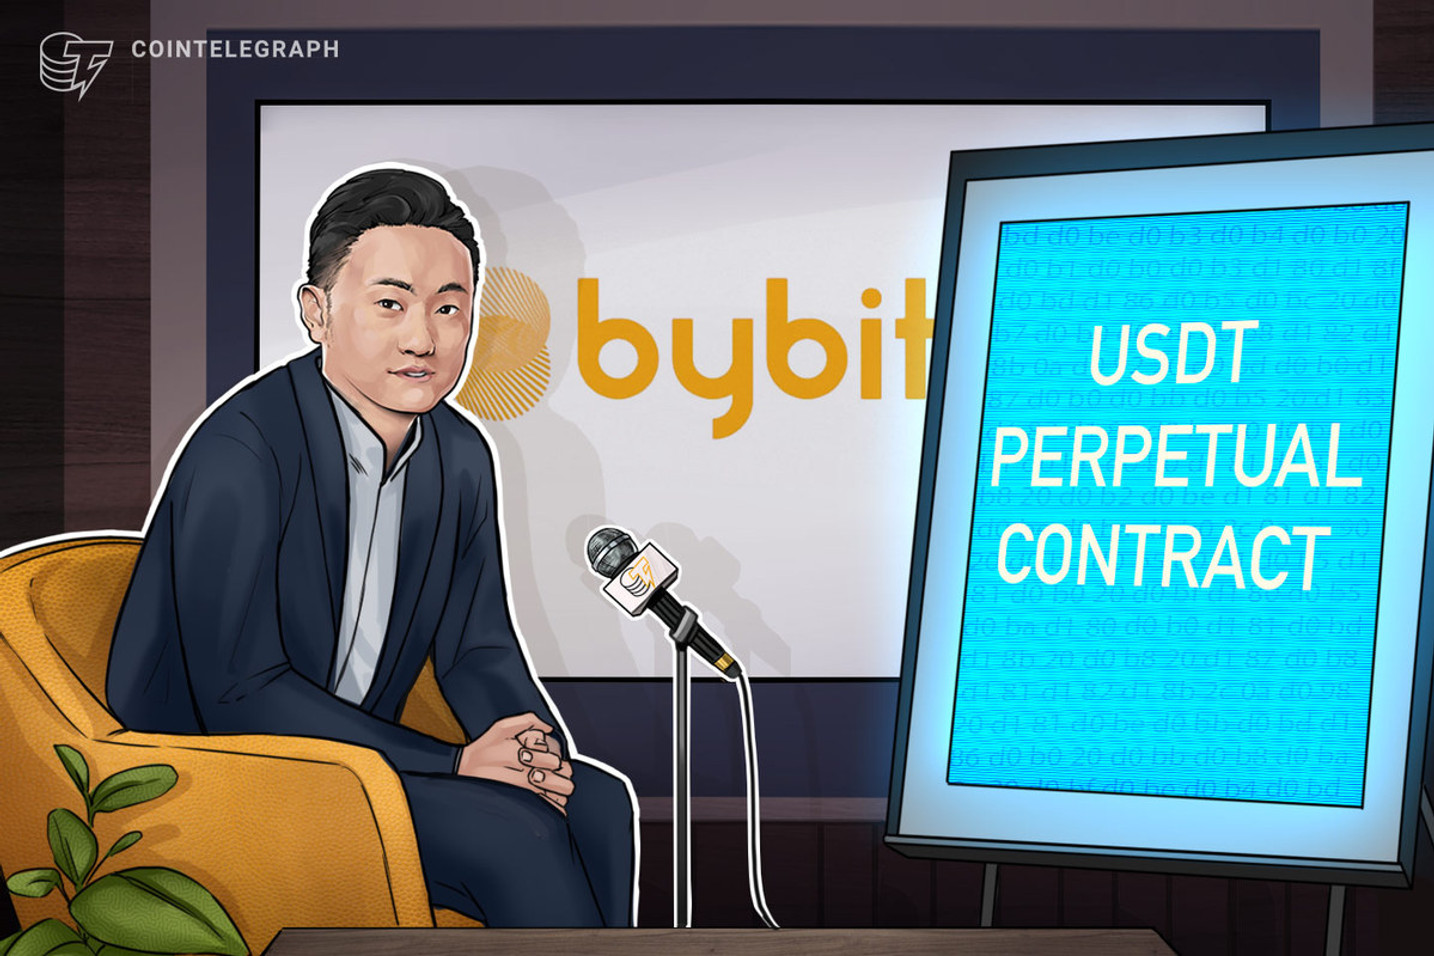 Exchange's Live AMA to Unveil Plans for New USDT Perpetual Contracts